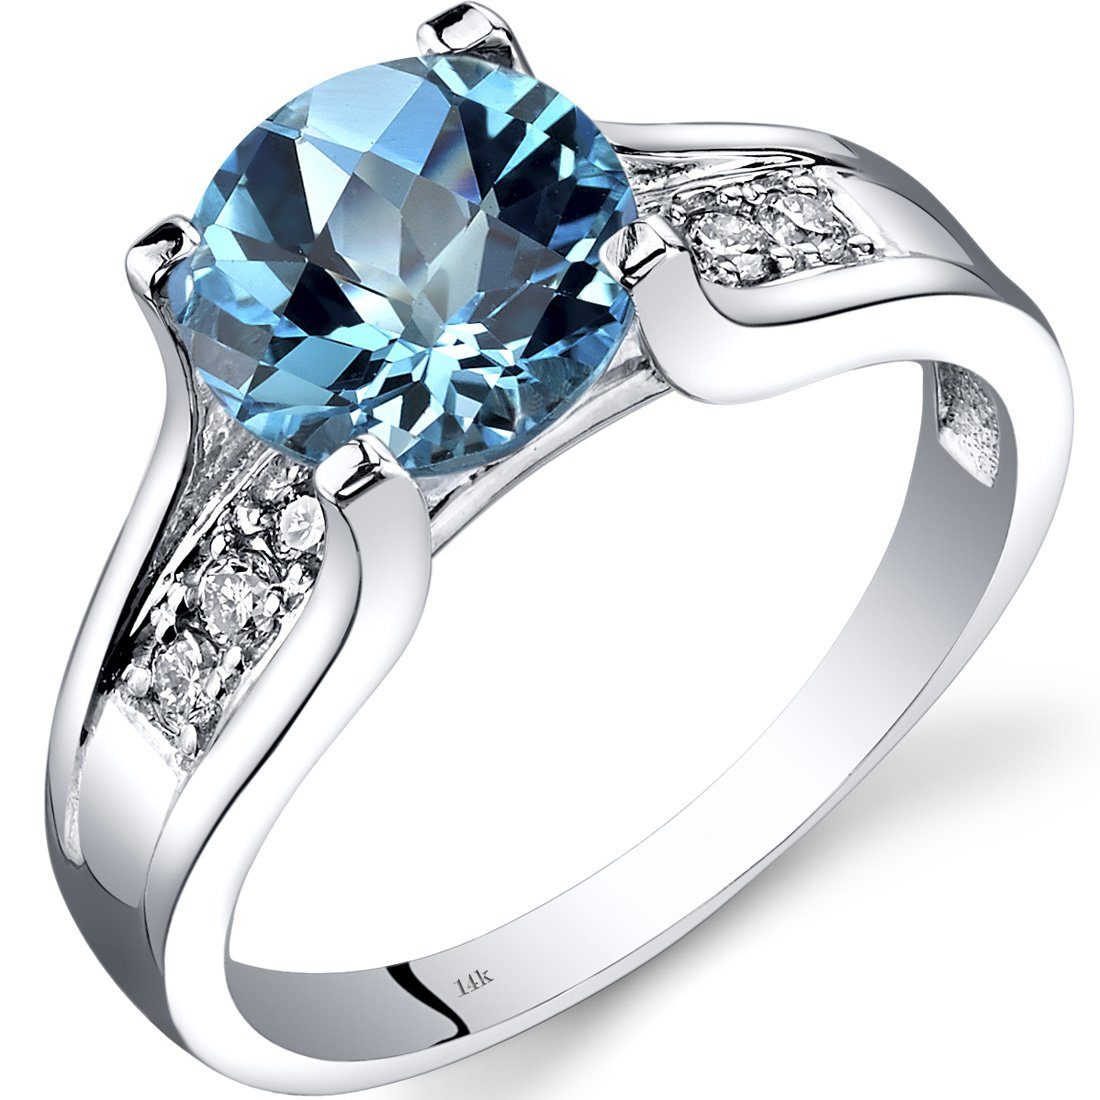 14K White Gold Swiss Blue Topaz Diamond Cocktail Ring 2.25 Carats Size 7 by Peora